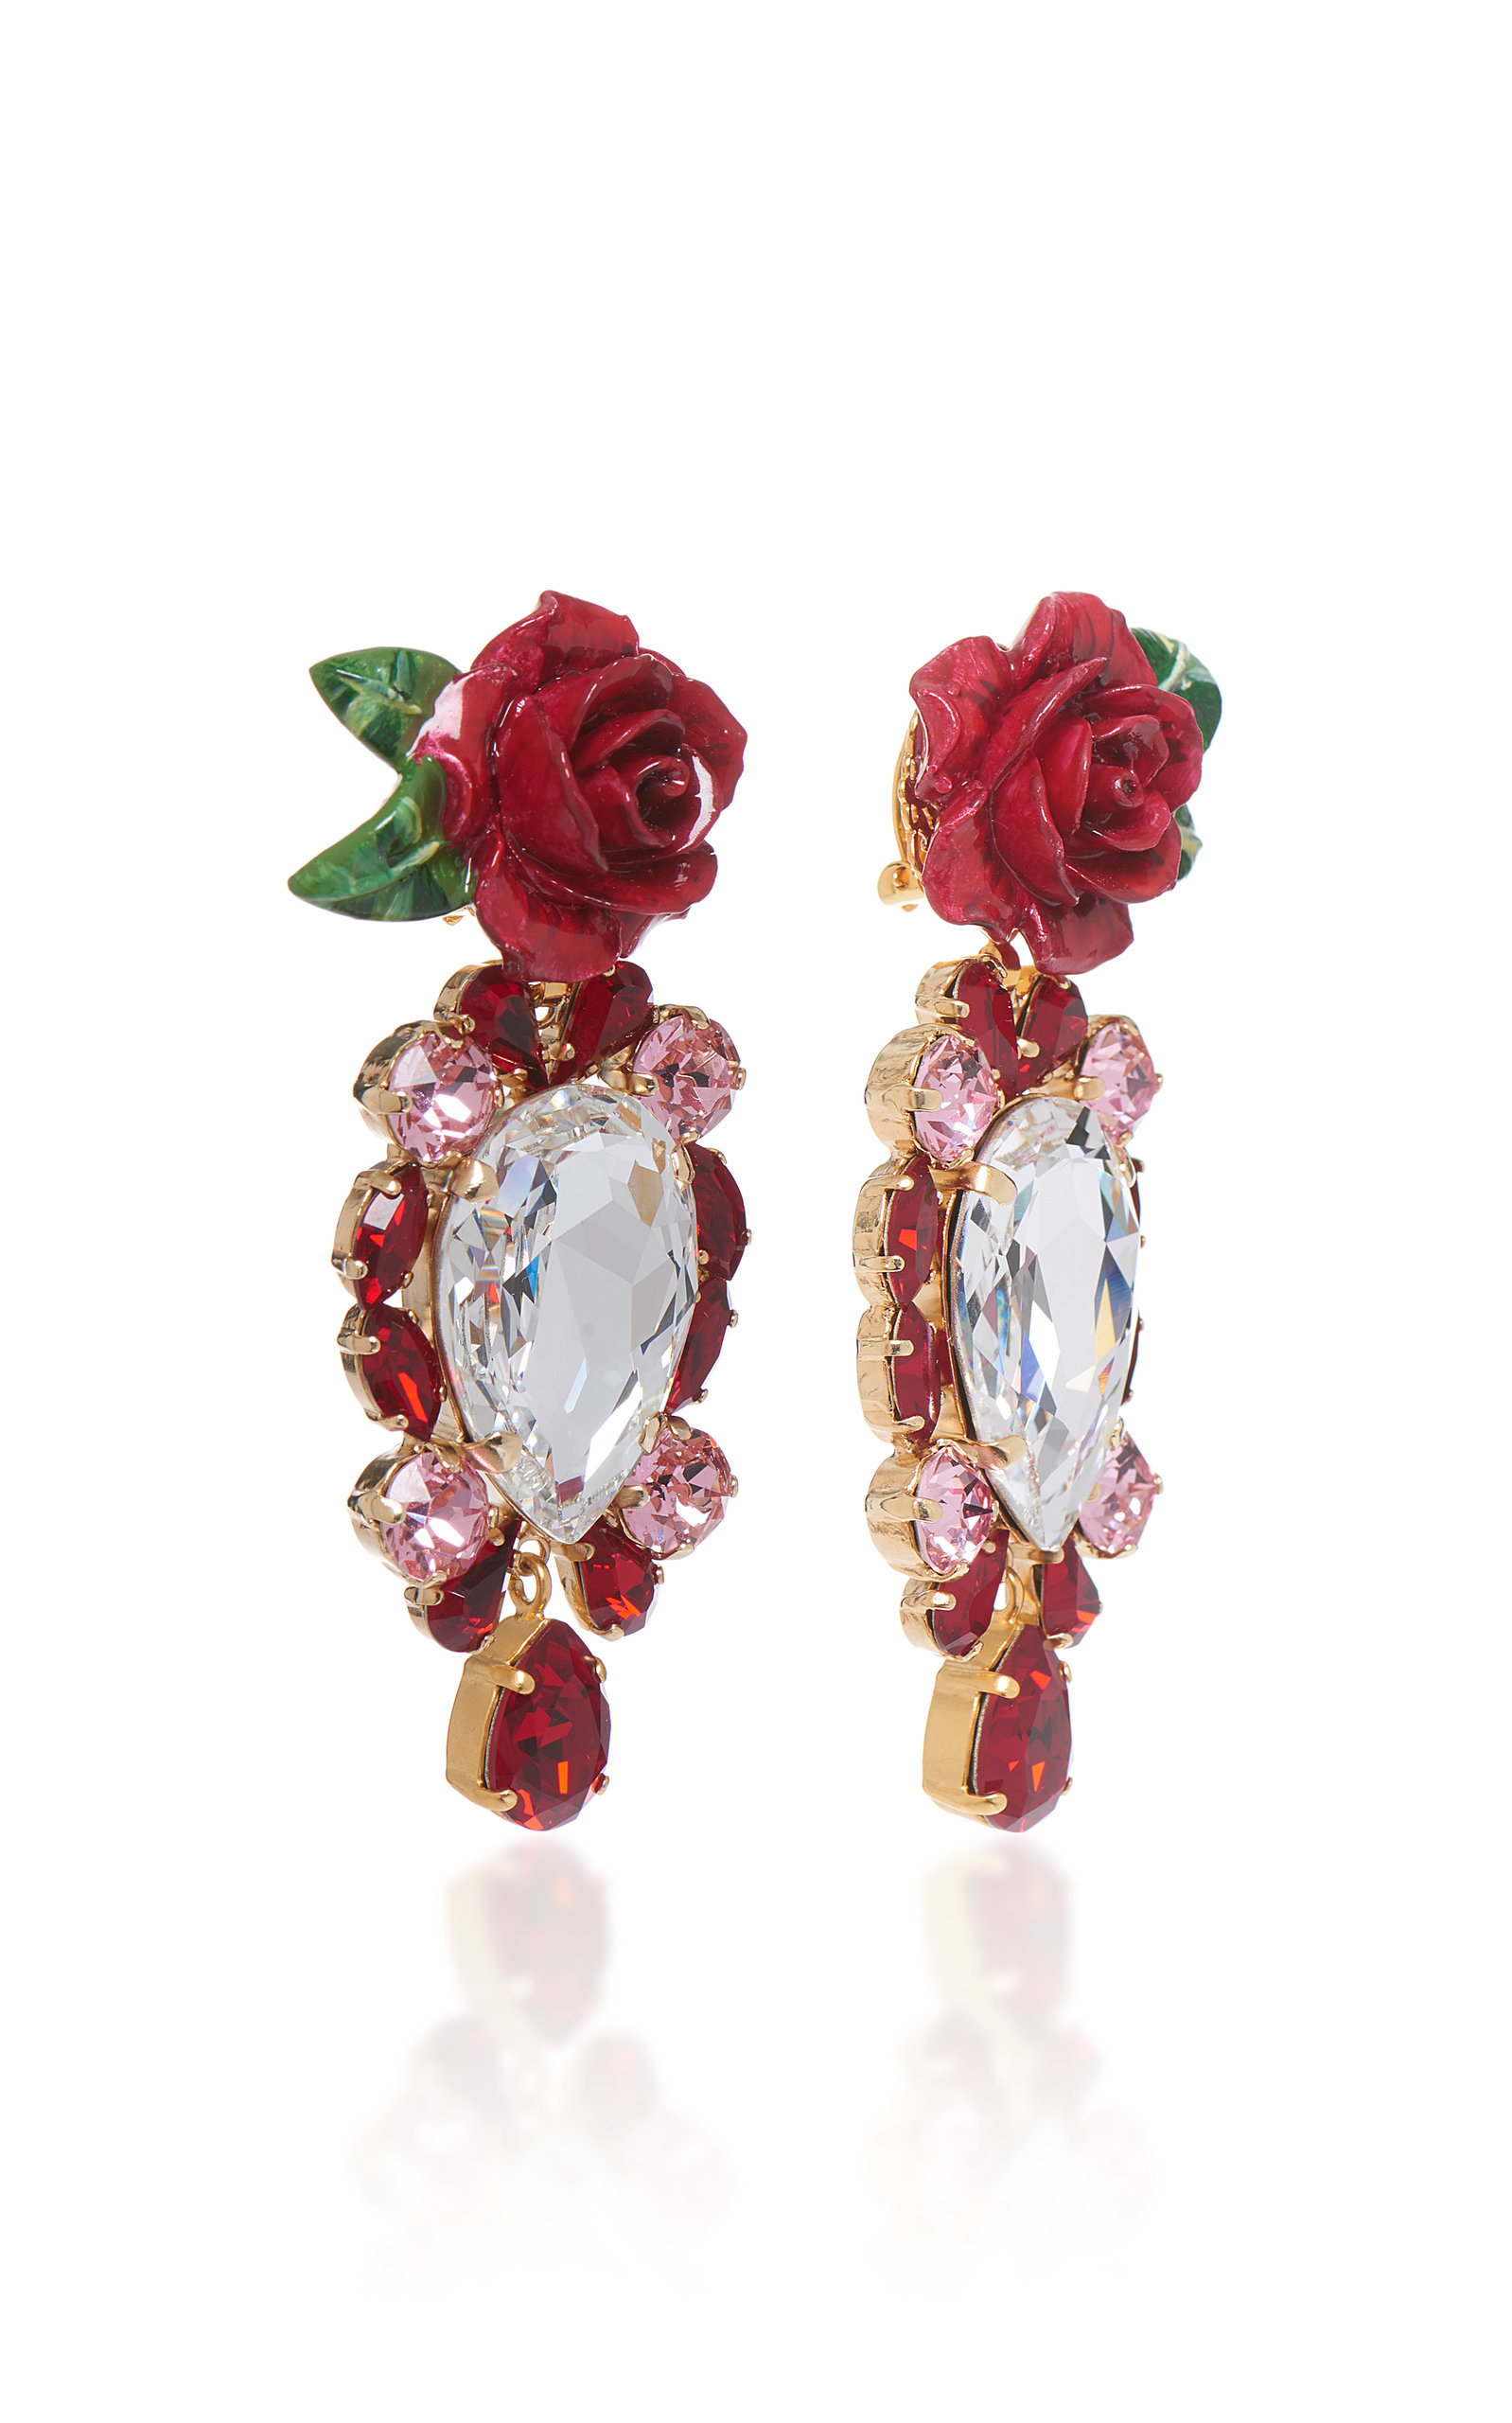 Rosetto Cameo Gold-Tone Brass and Crystal Earrings Dolce & Gabbana zlG1IvwH0e